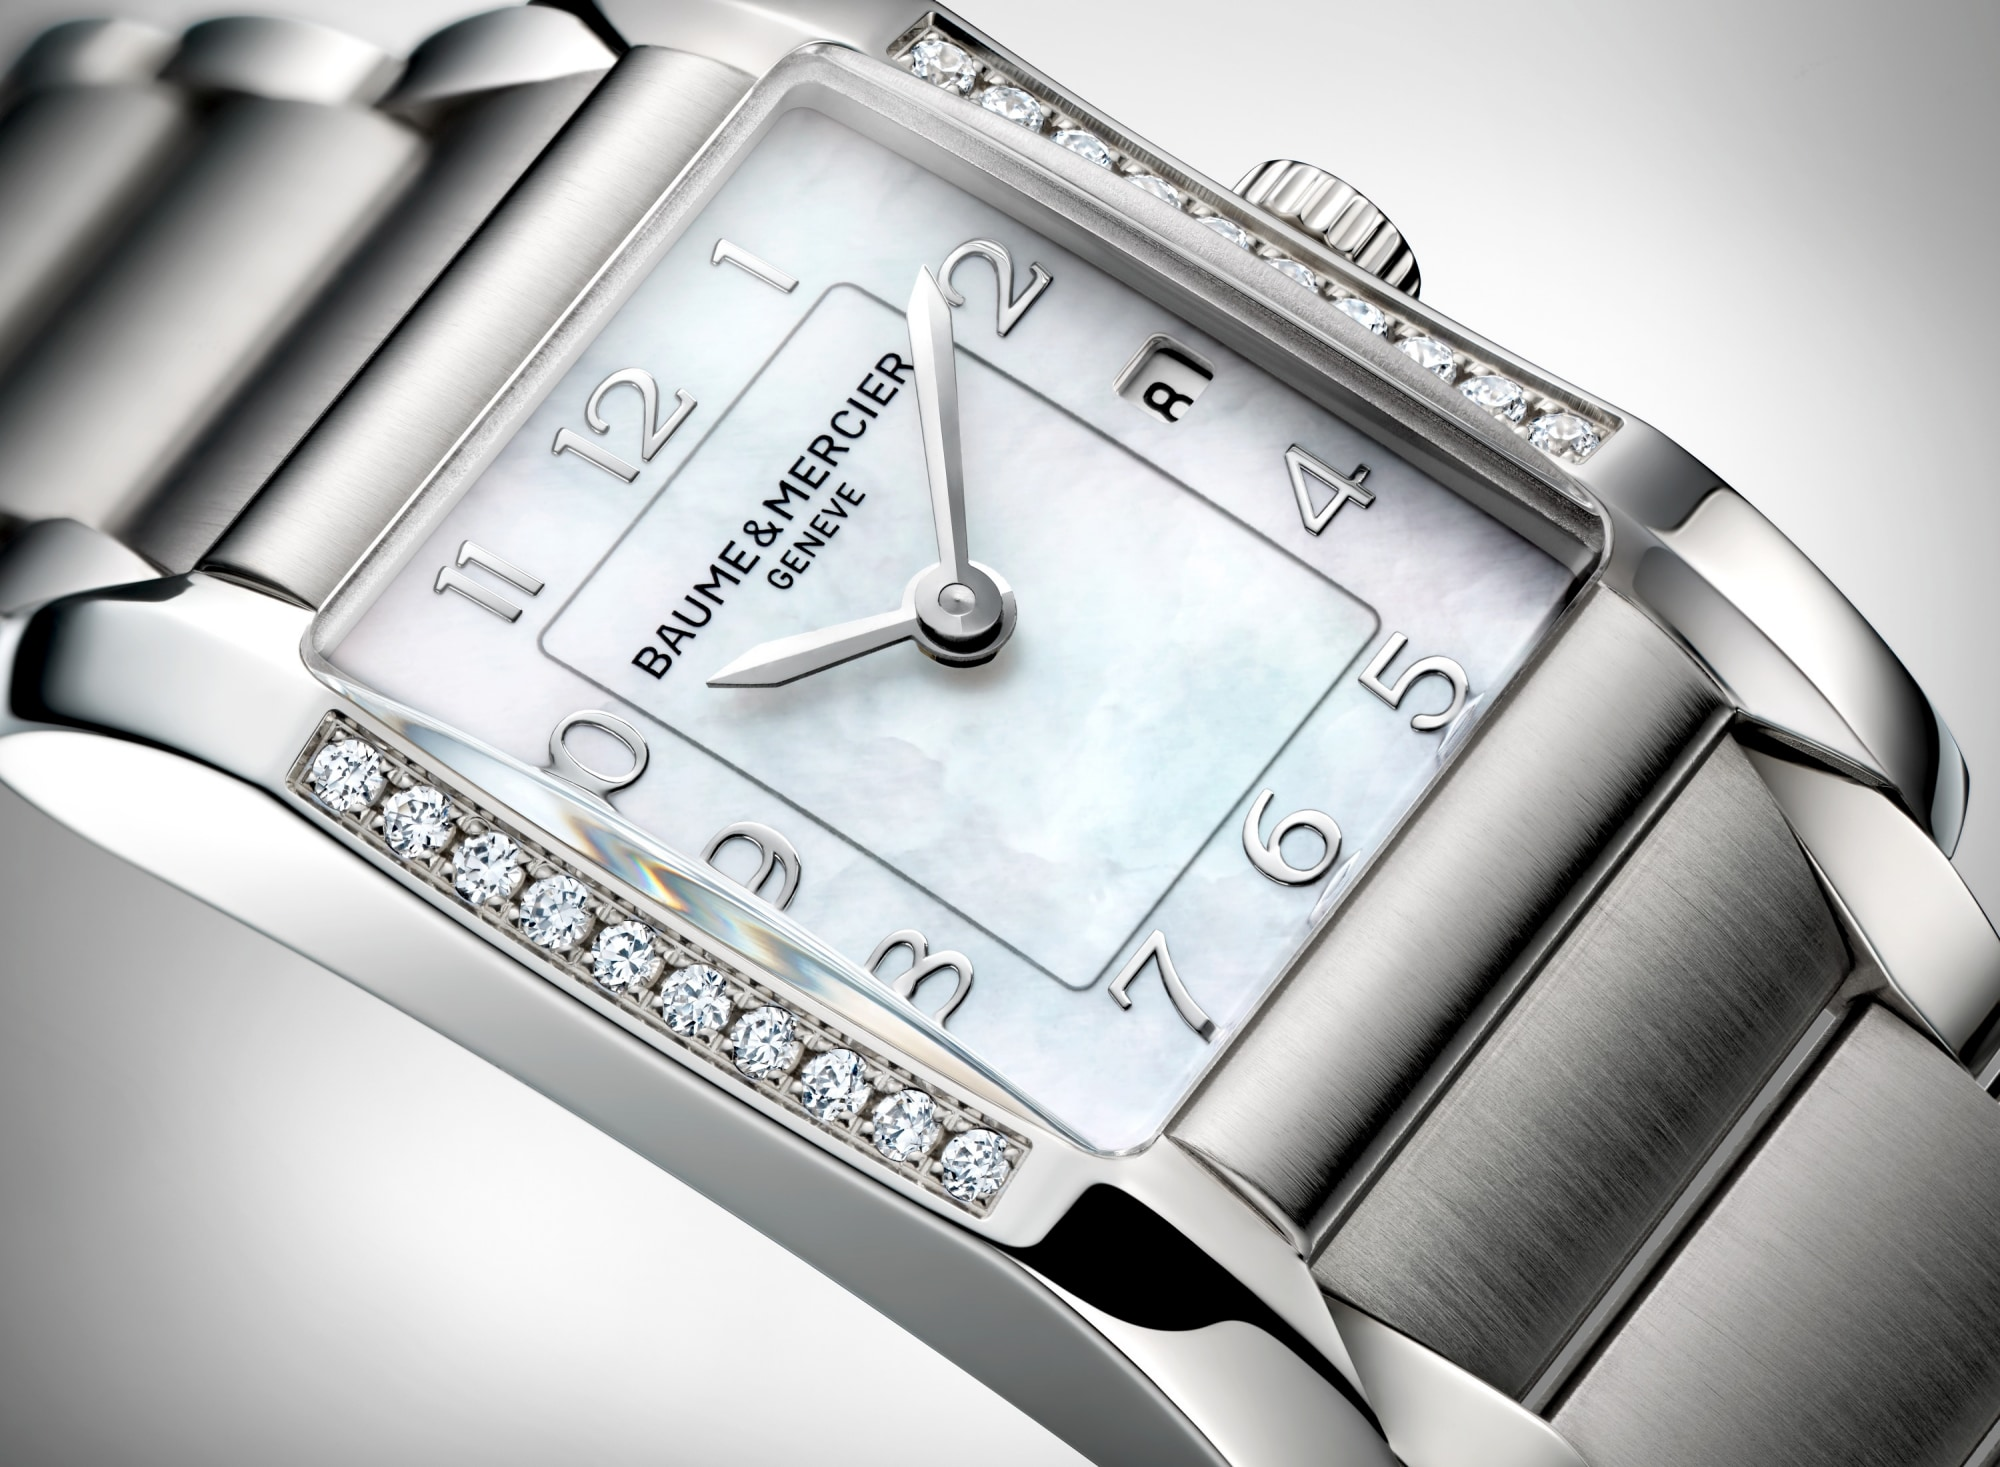 Hampton 10051 Watch for ladies | Check Prices on Baume & Mercier 3|4 Detail -